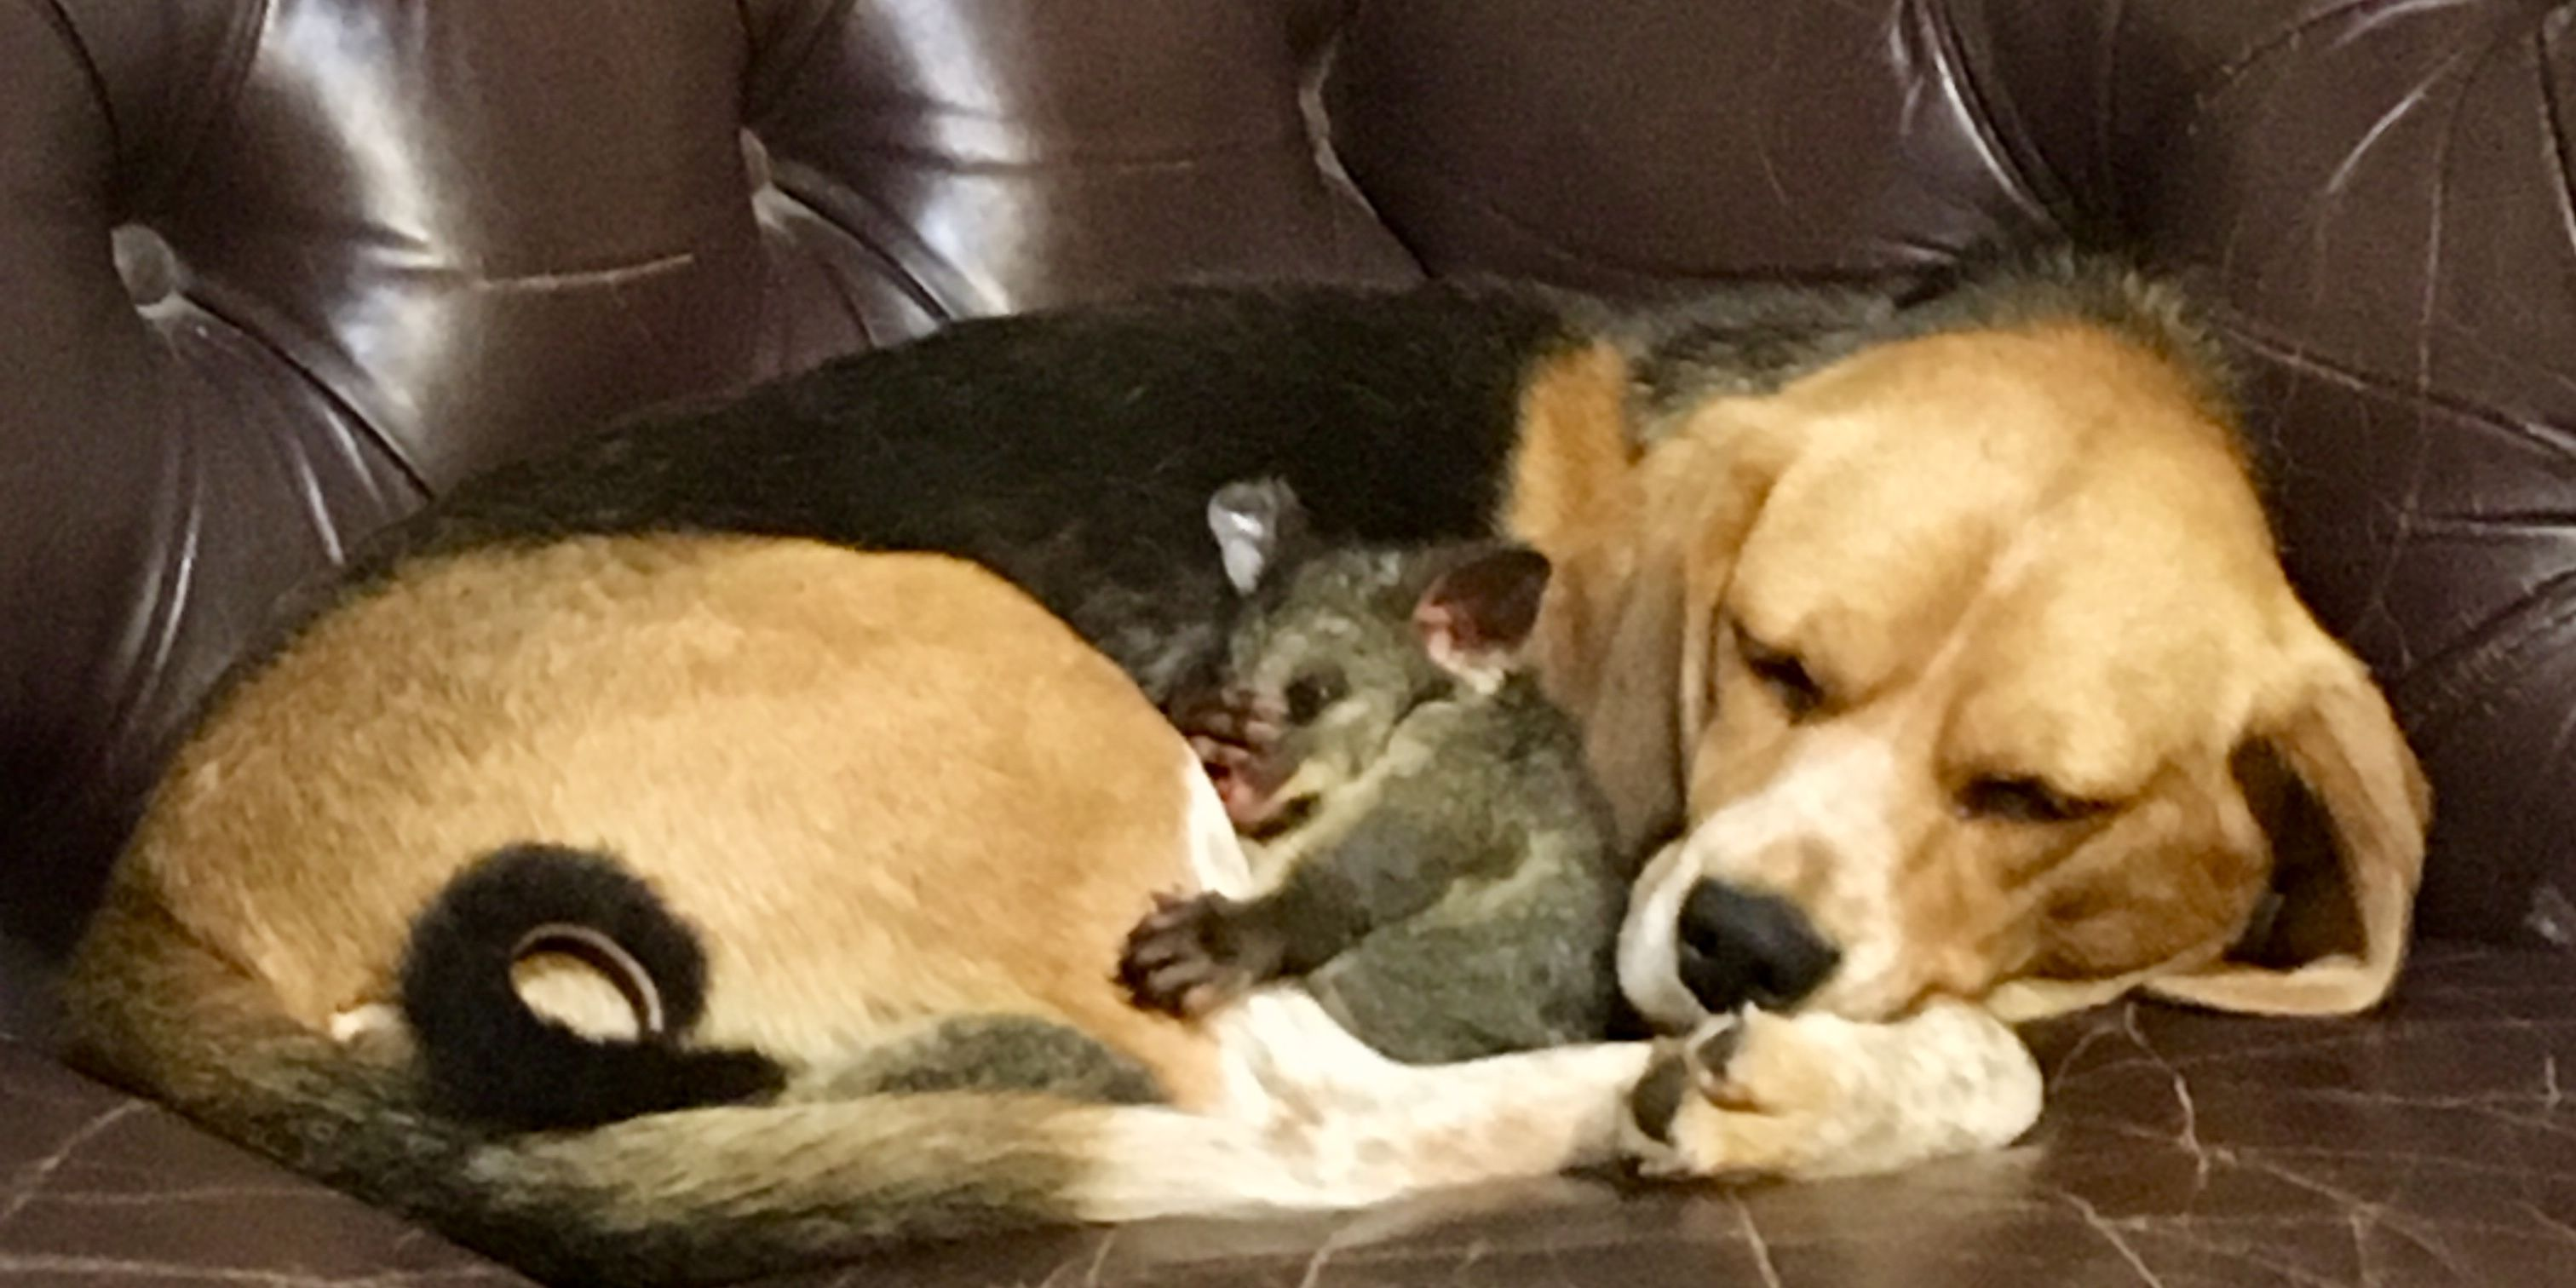 Molly the Beagle has adopted a baby possum after losing her litter of puppies